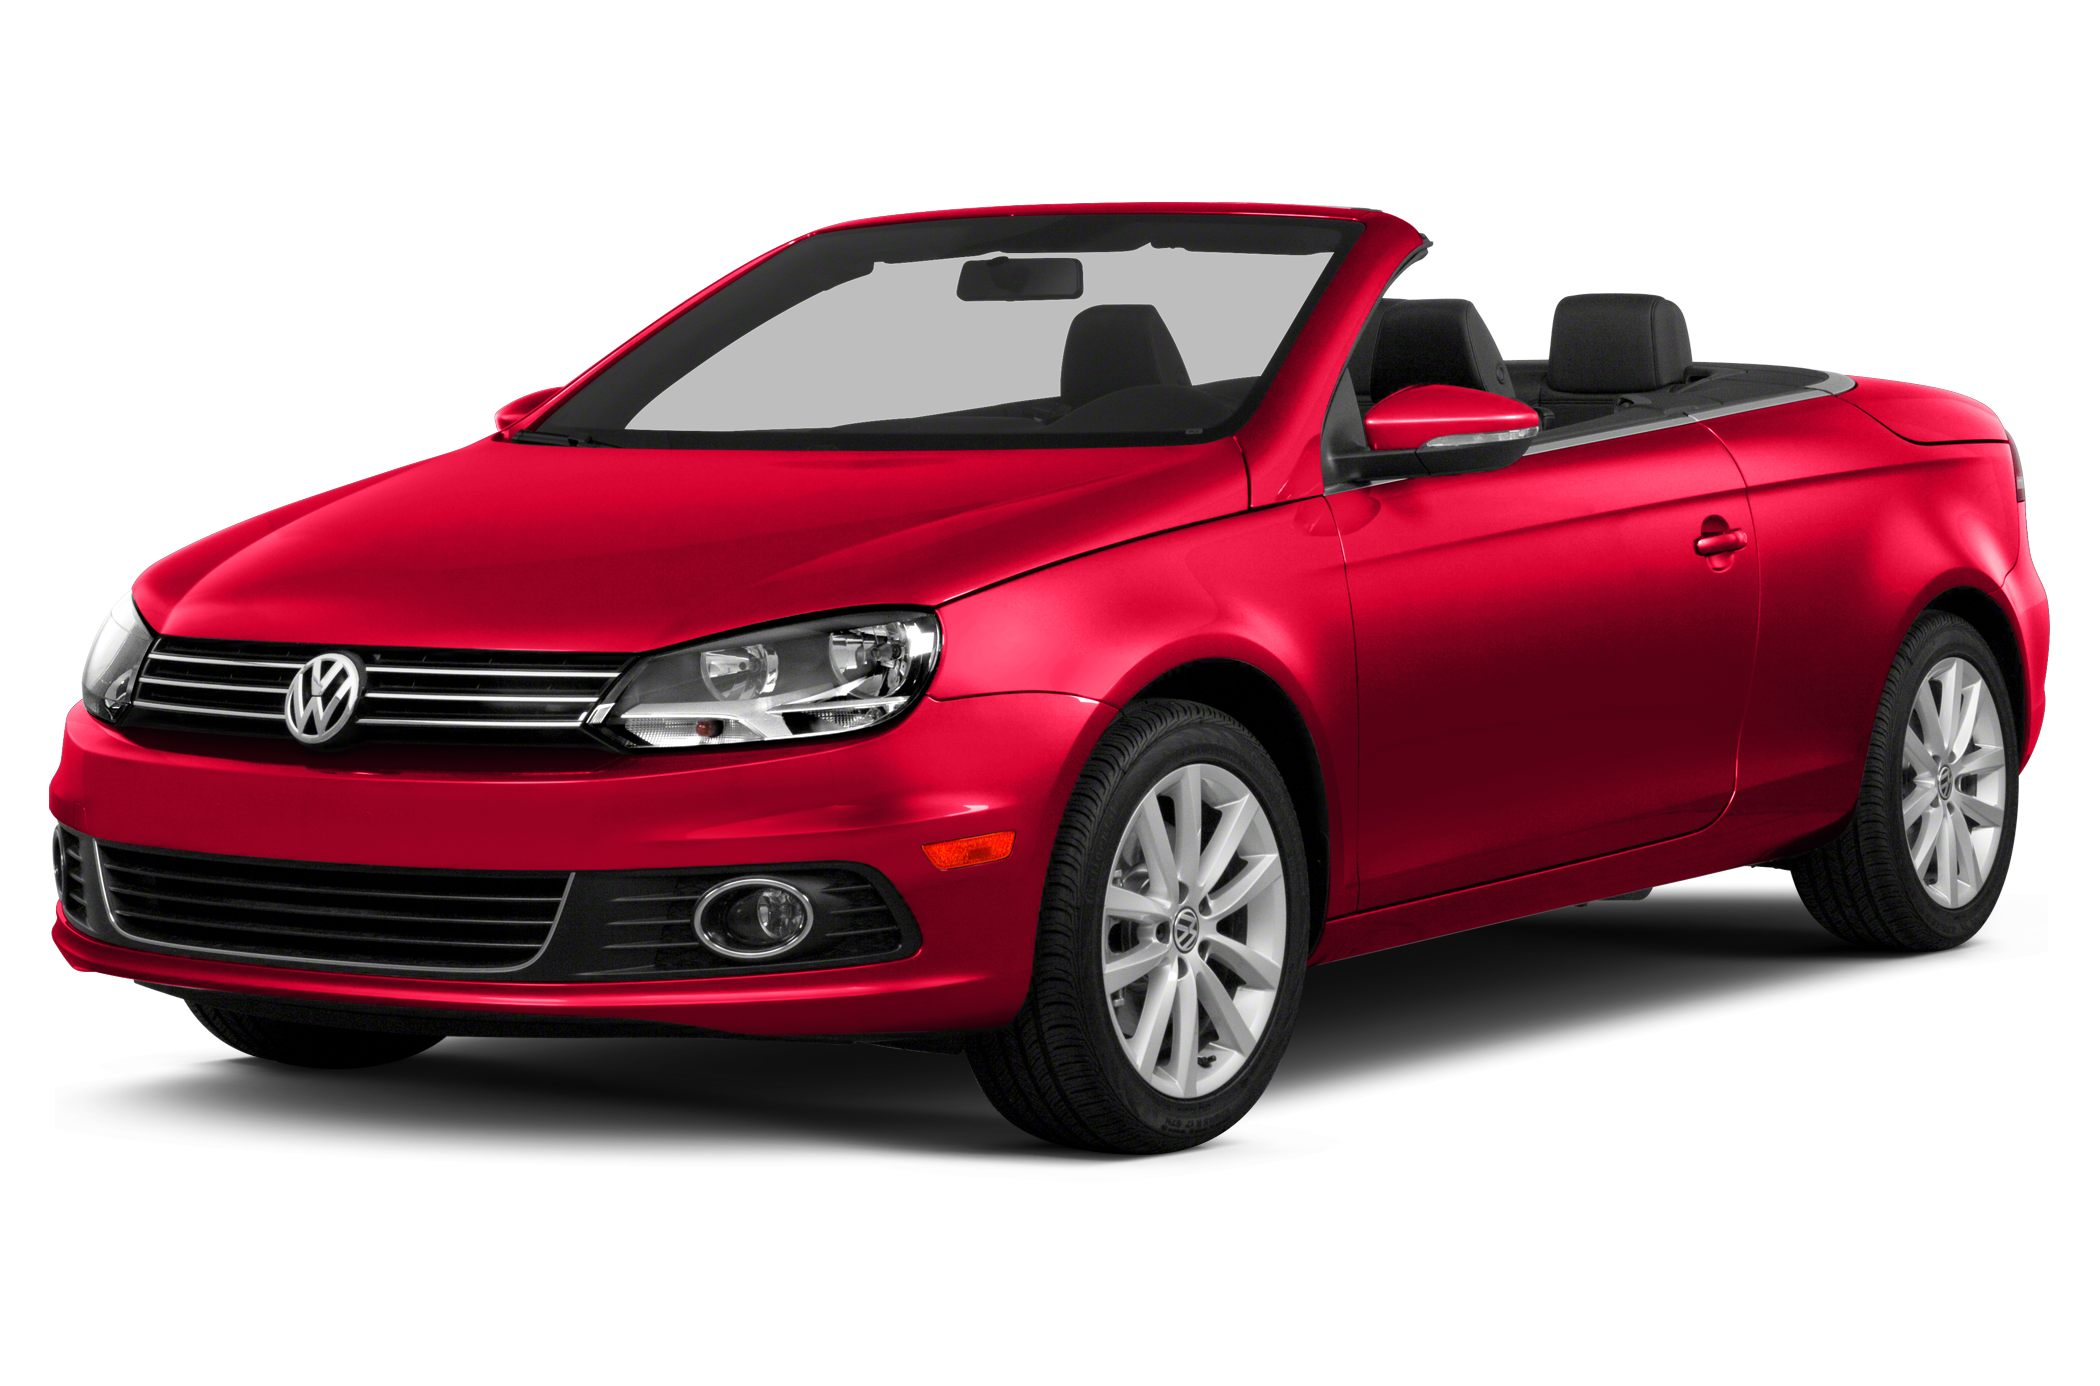 2015 Volkswagen Eos Komfort Edition Convertible for sale in Rockville for $33,900 with 0 miles